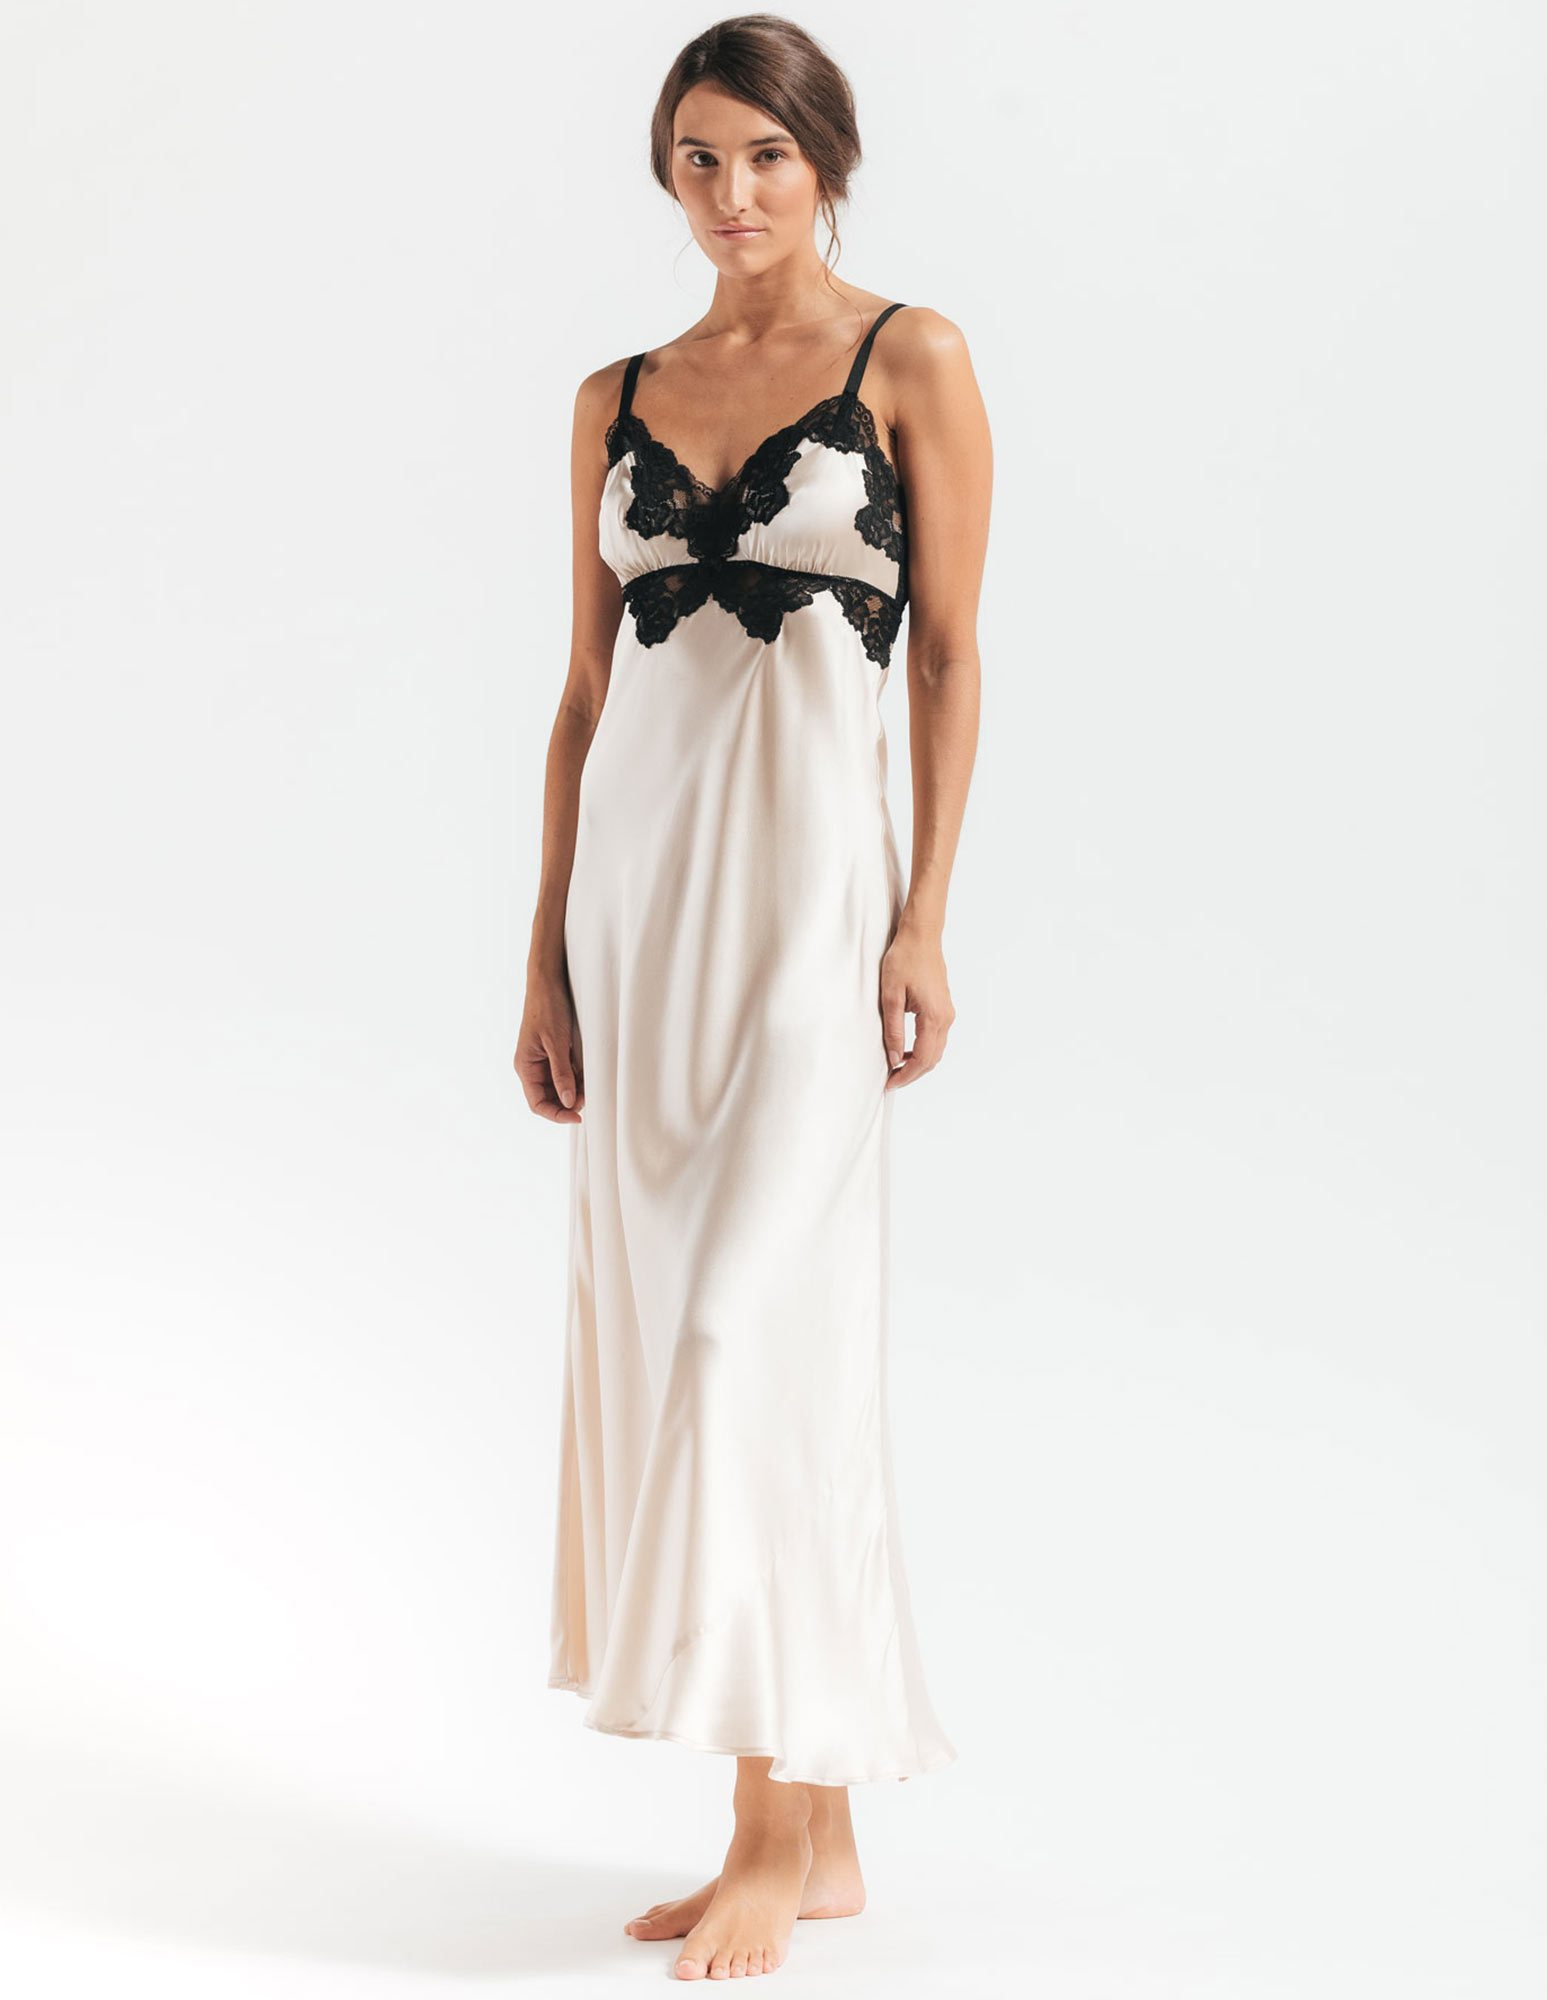 22. Morgan Vintage Gown $261. S-L. Champagne (shown), all black, or all ivory.